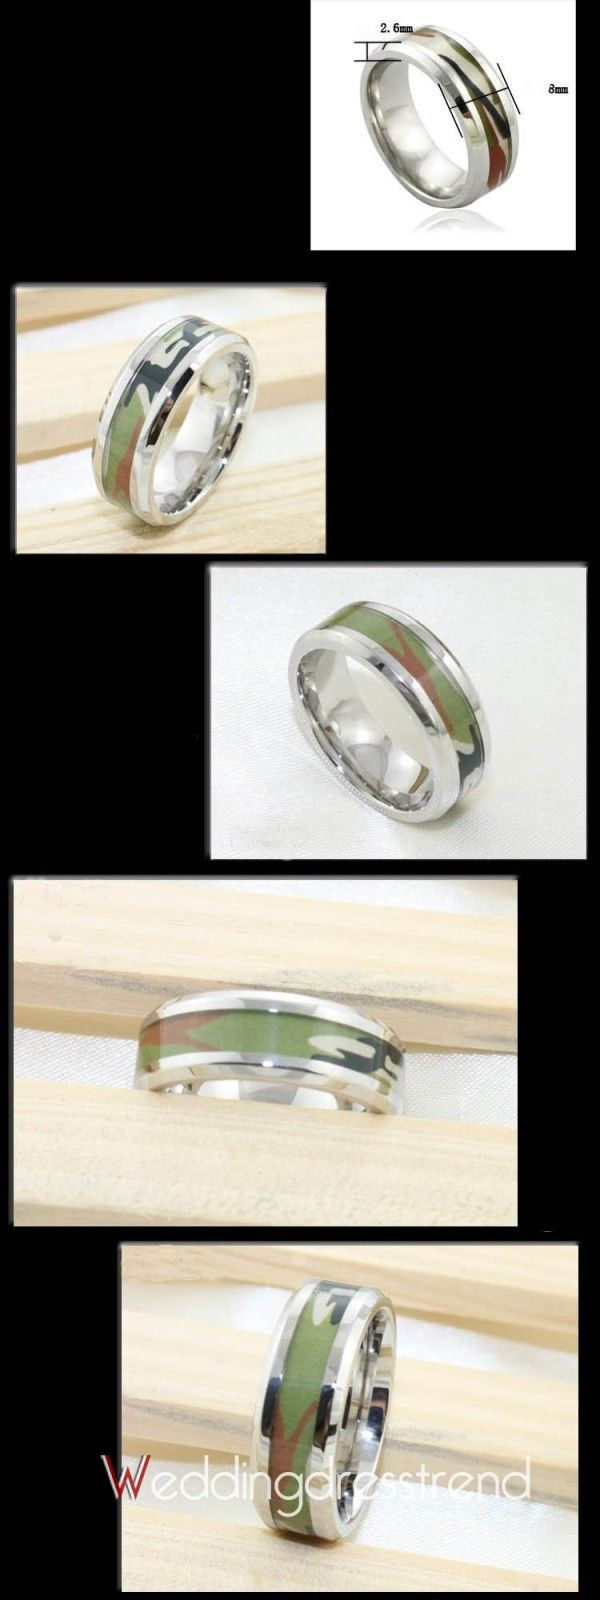 Special Alloy/Silvering /Overgild Camouflage Engagement Rings for Sale